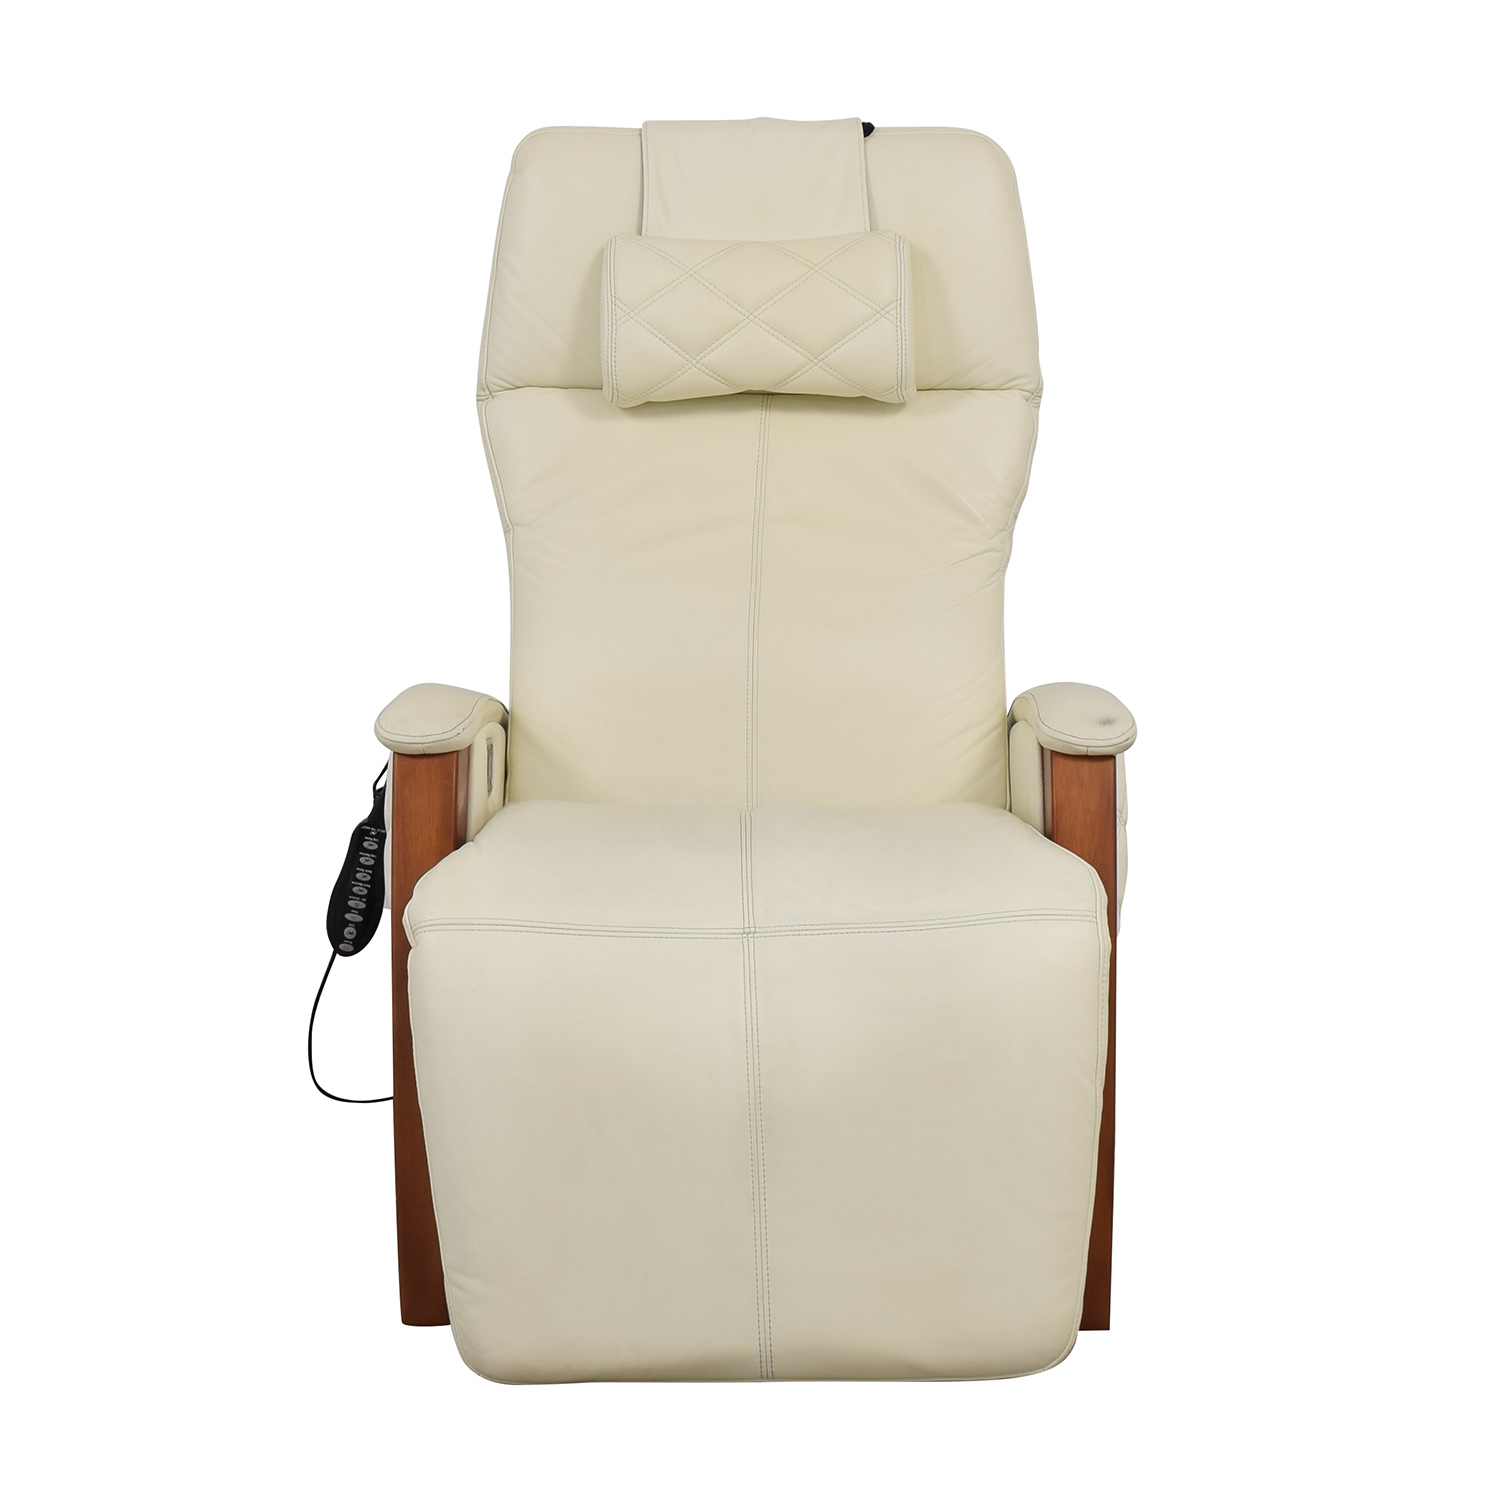 shop Relax The Back Electro Lounge Chair Relax The Back Chairs